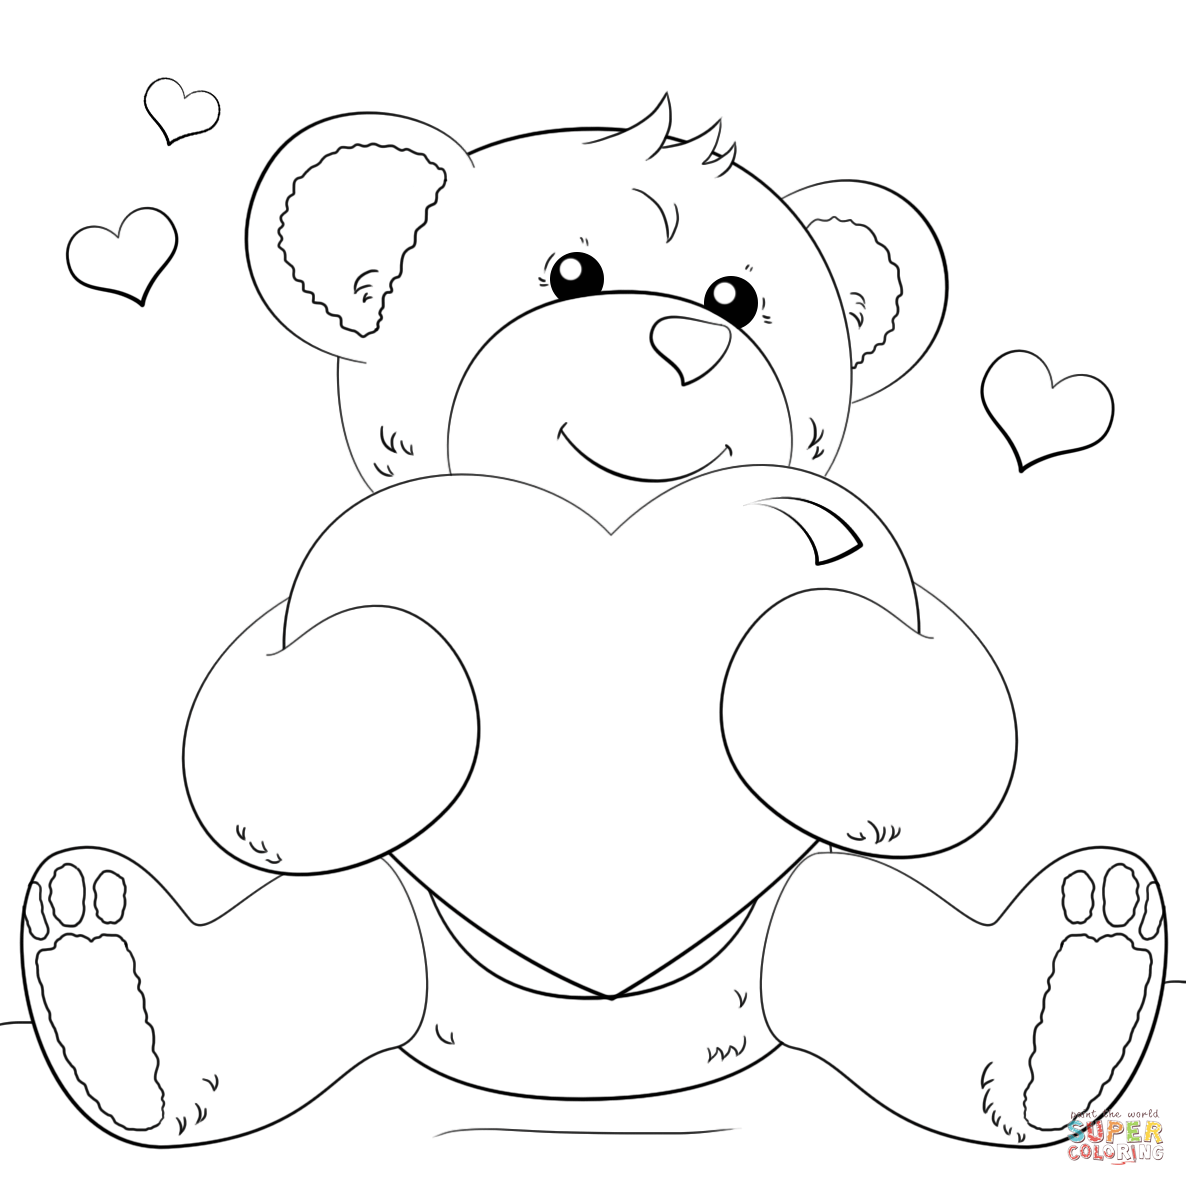 Pictures Of Hearts Coloring Pages At Getdrawings Com Free For